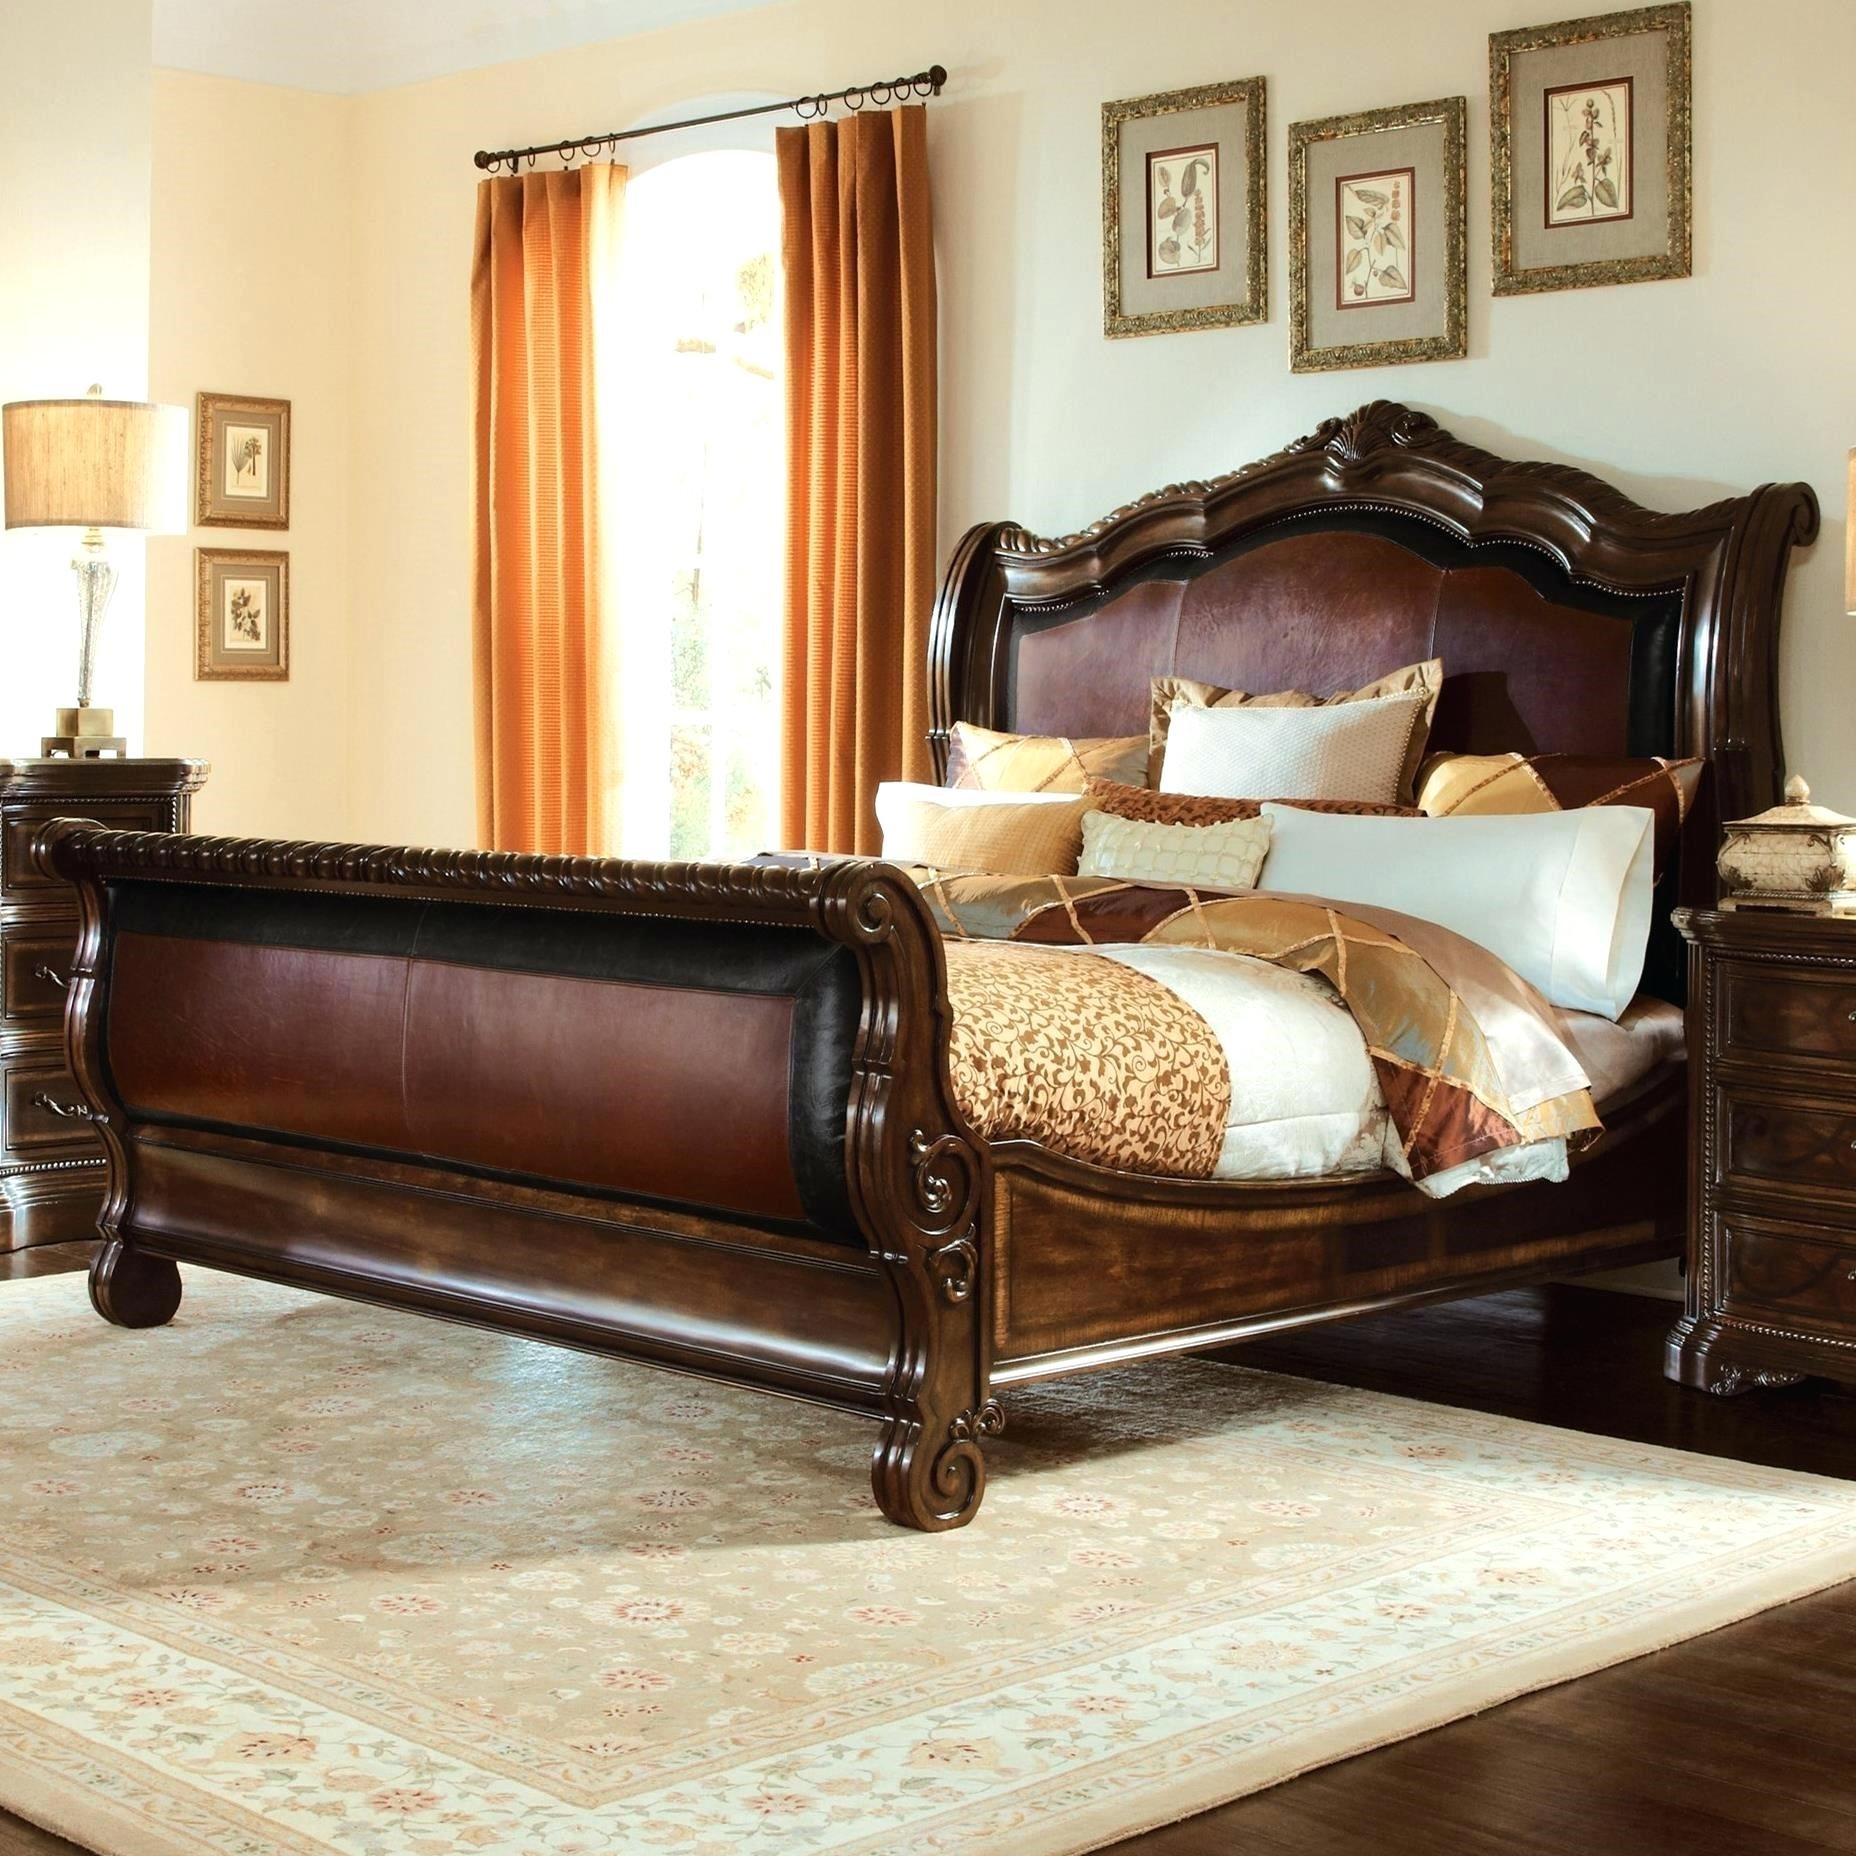 King size sleight bed